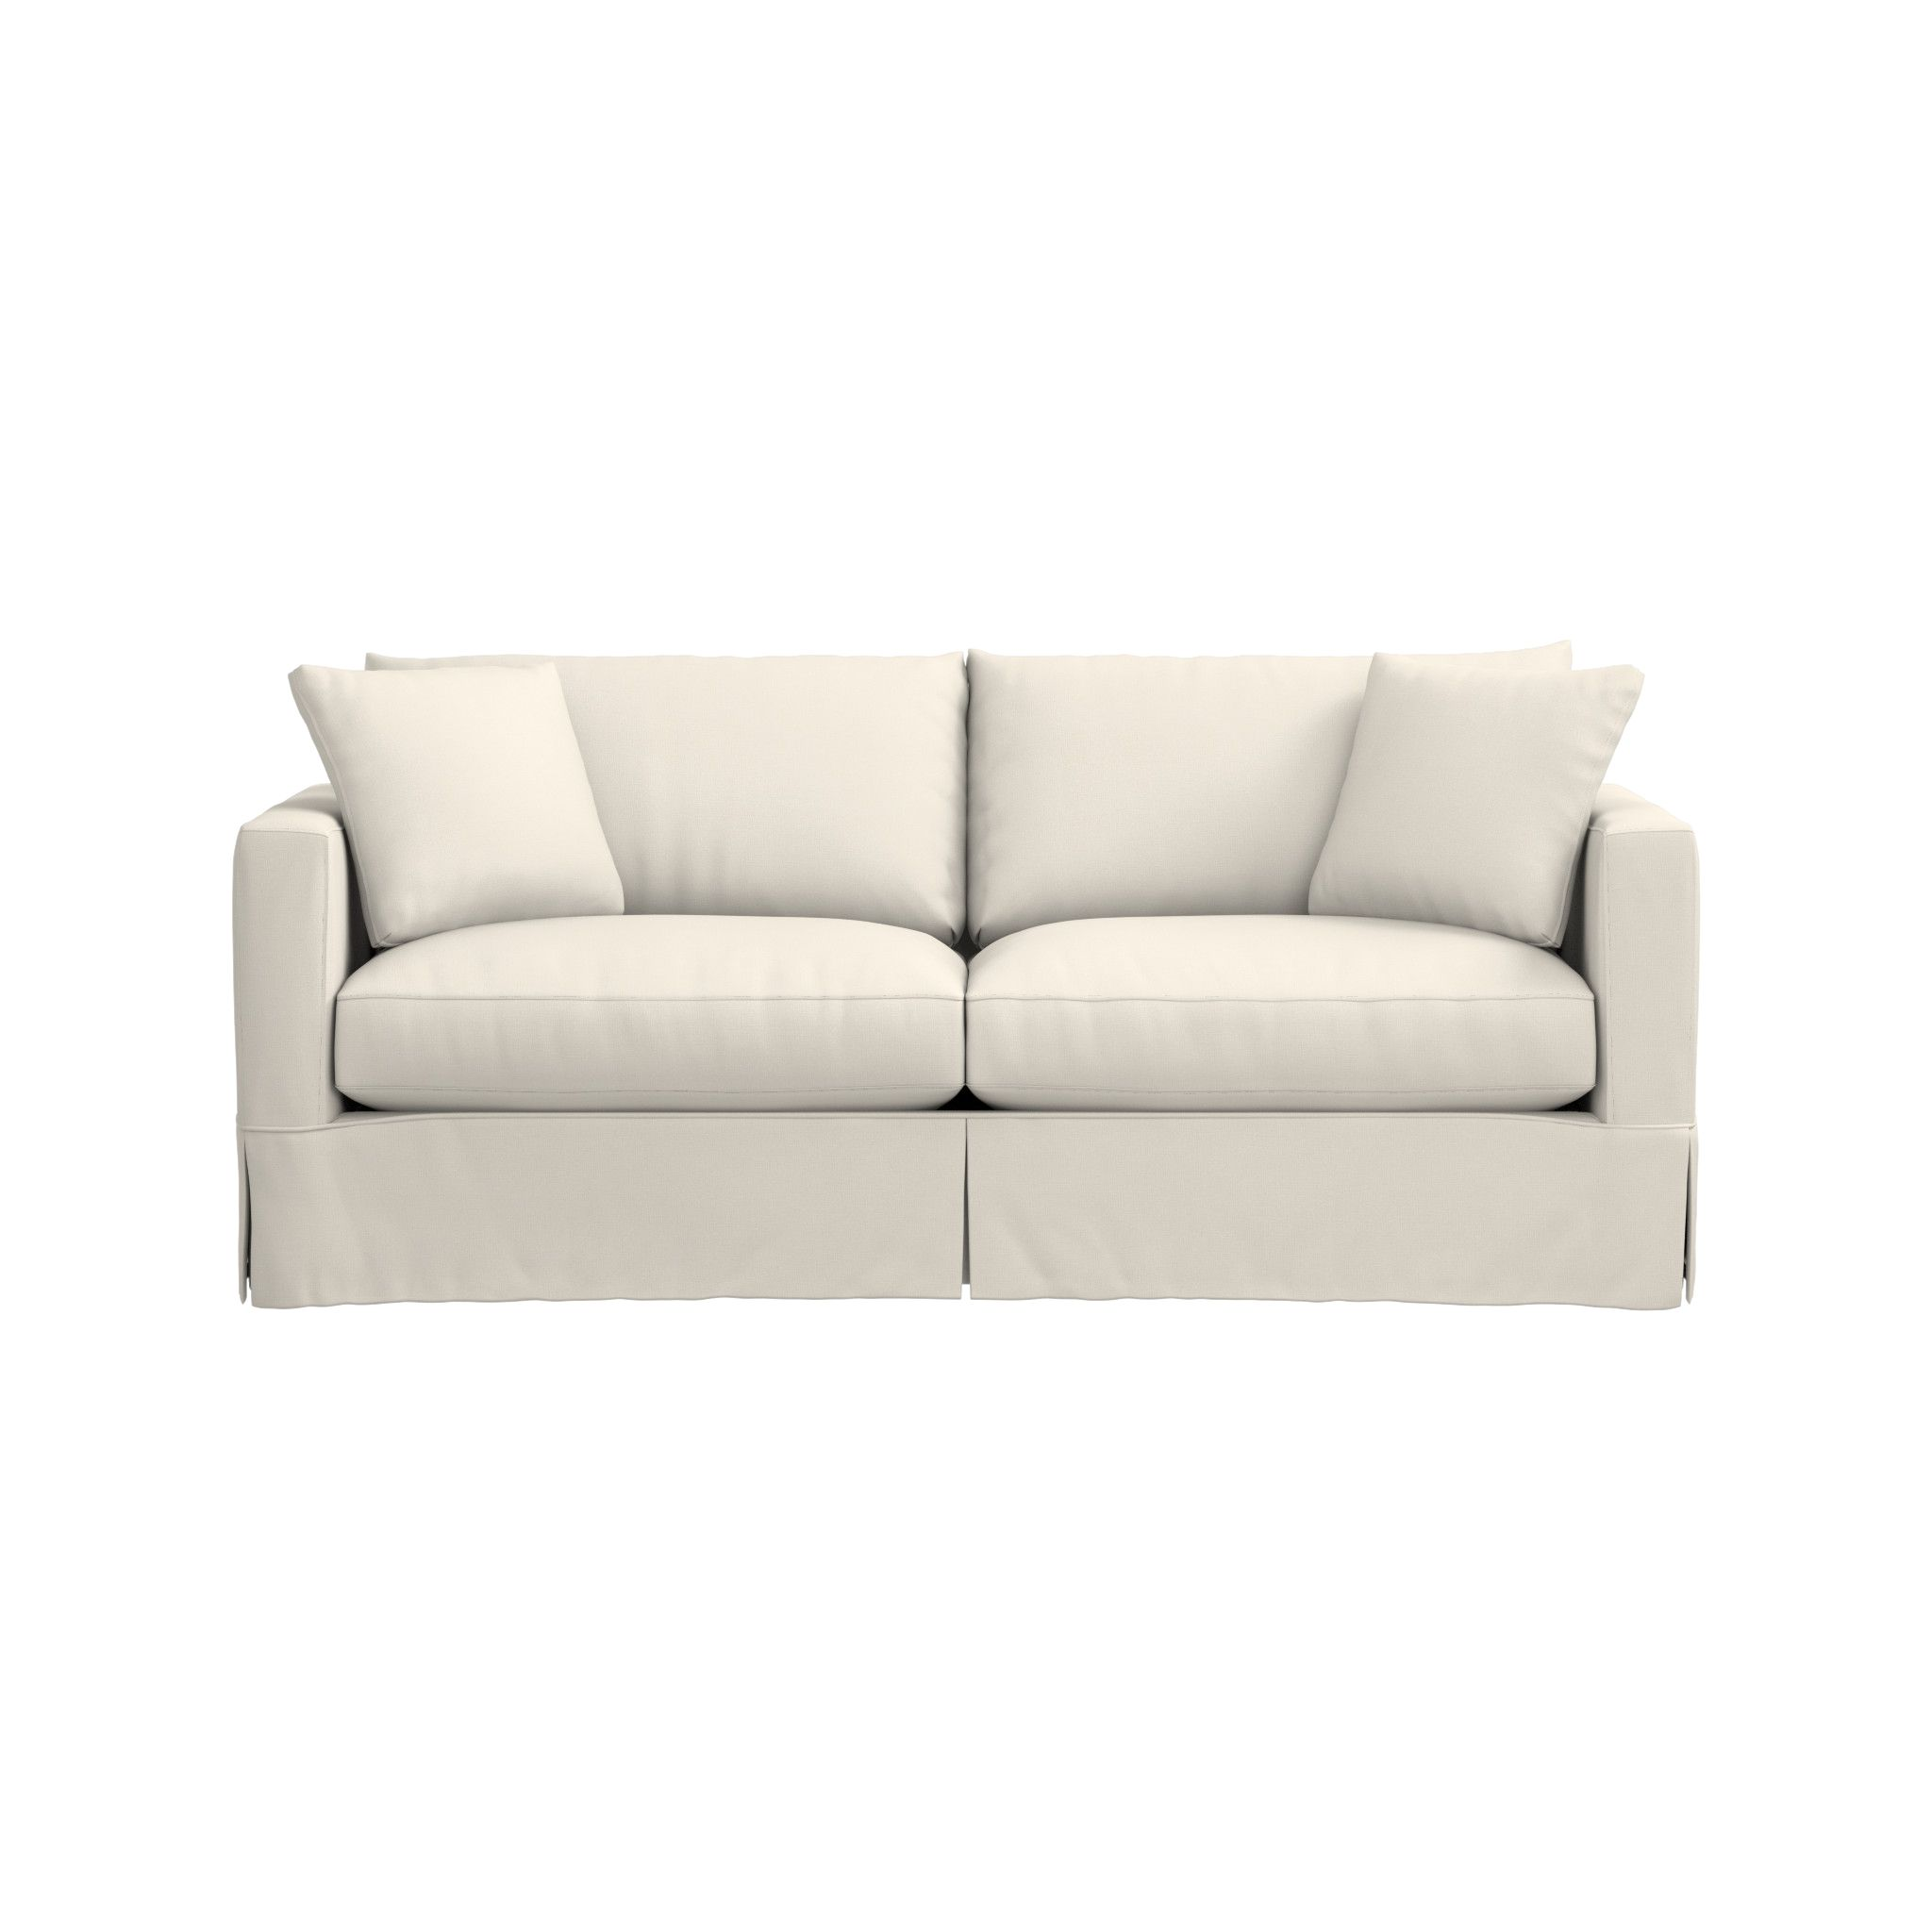 Crate and Barrel Couch | Axis Sectional Sofa | Crate and Barrel Davis Sectional